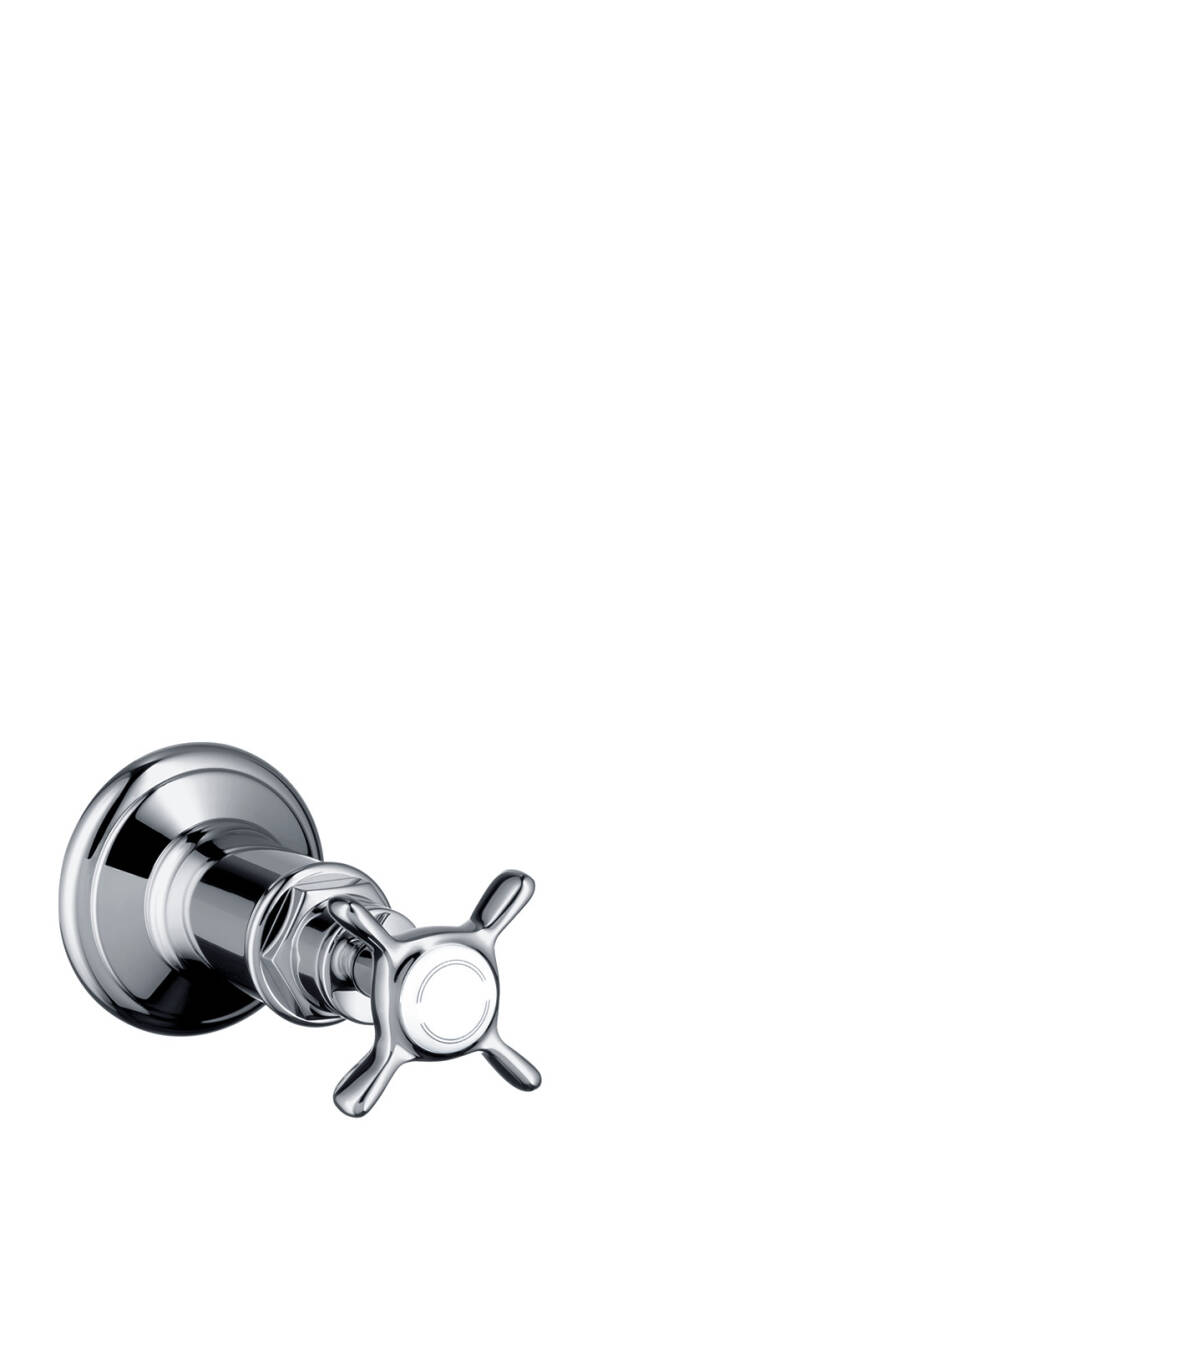 Shut-off valve for concealed installation with cross handle, Chrome, 16871000